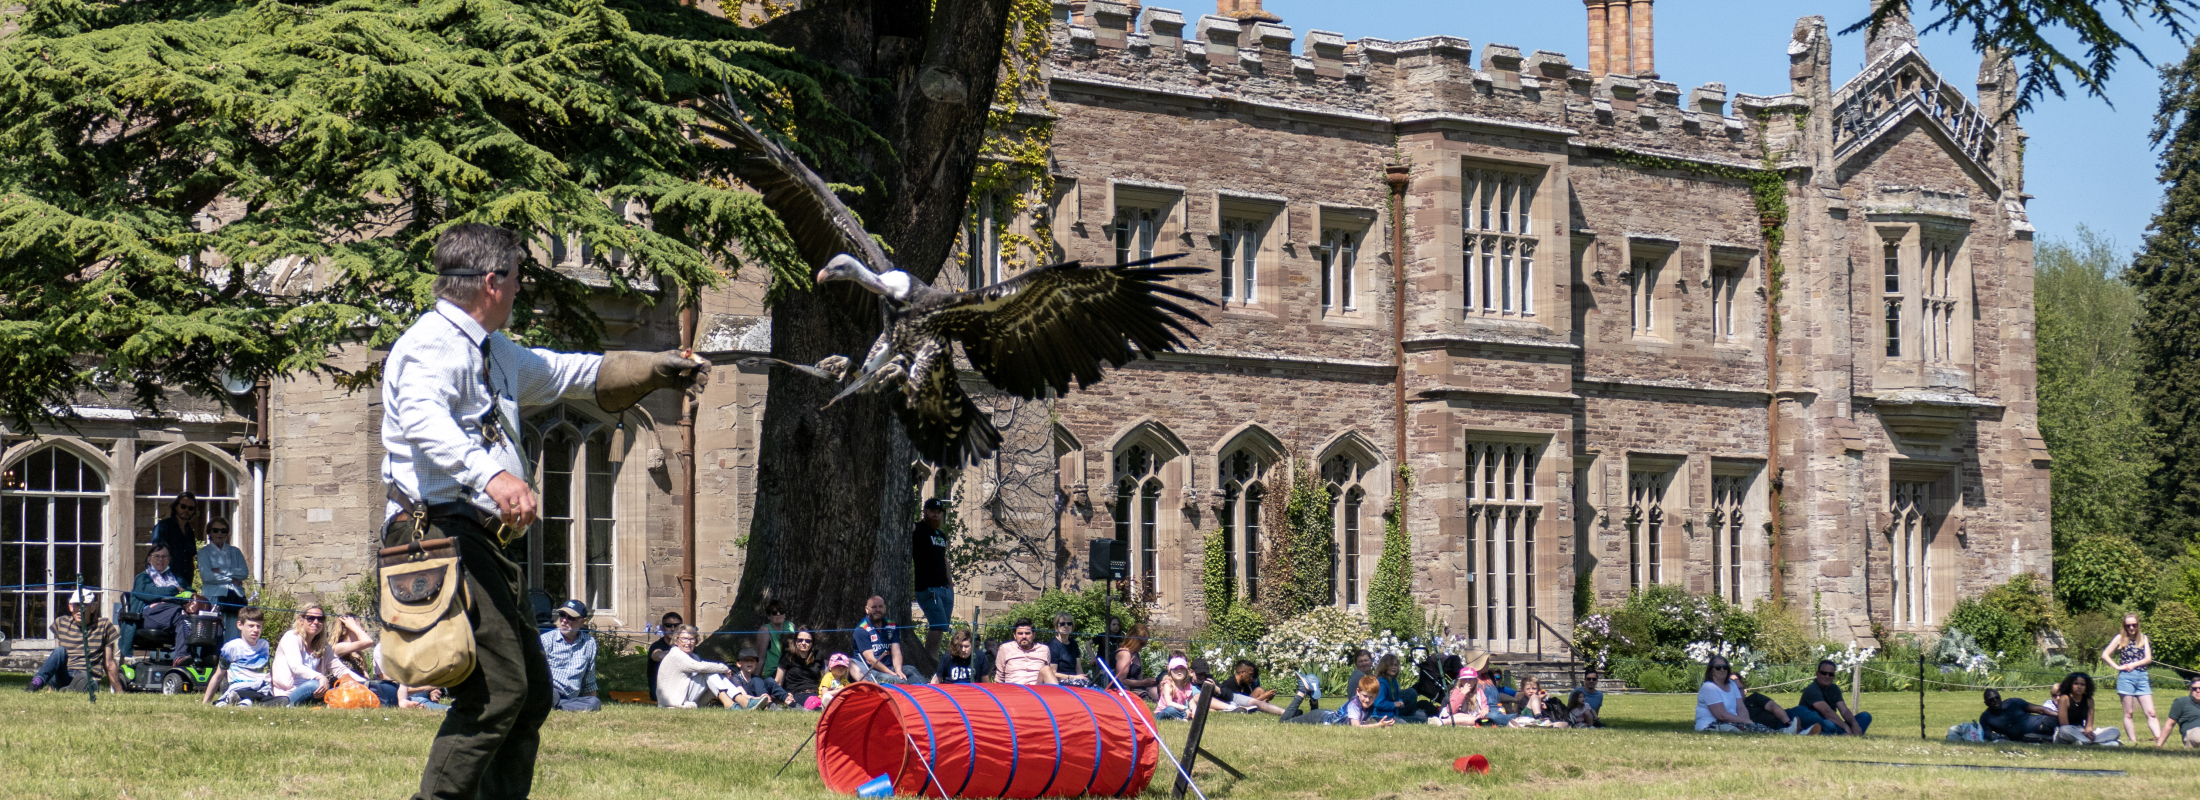 A bird of prey landing on the outstretched arm of a man. Behind them a crowd watches, seated on the grass in front of a castle